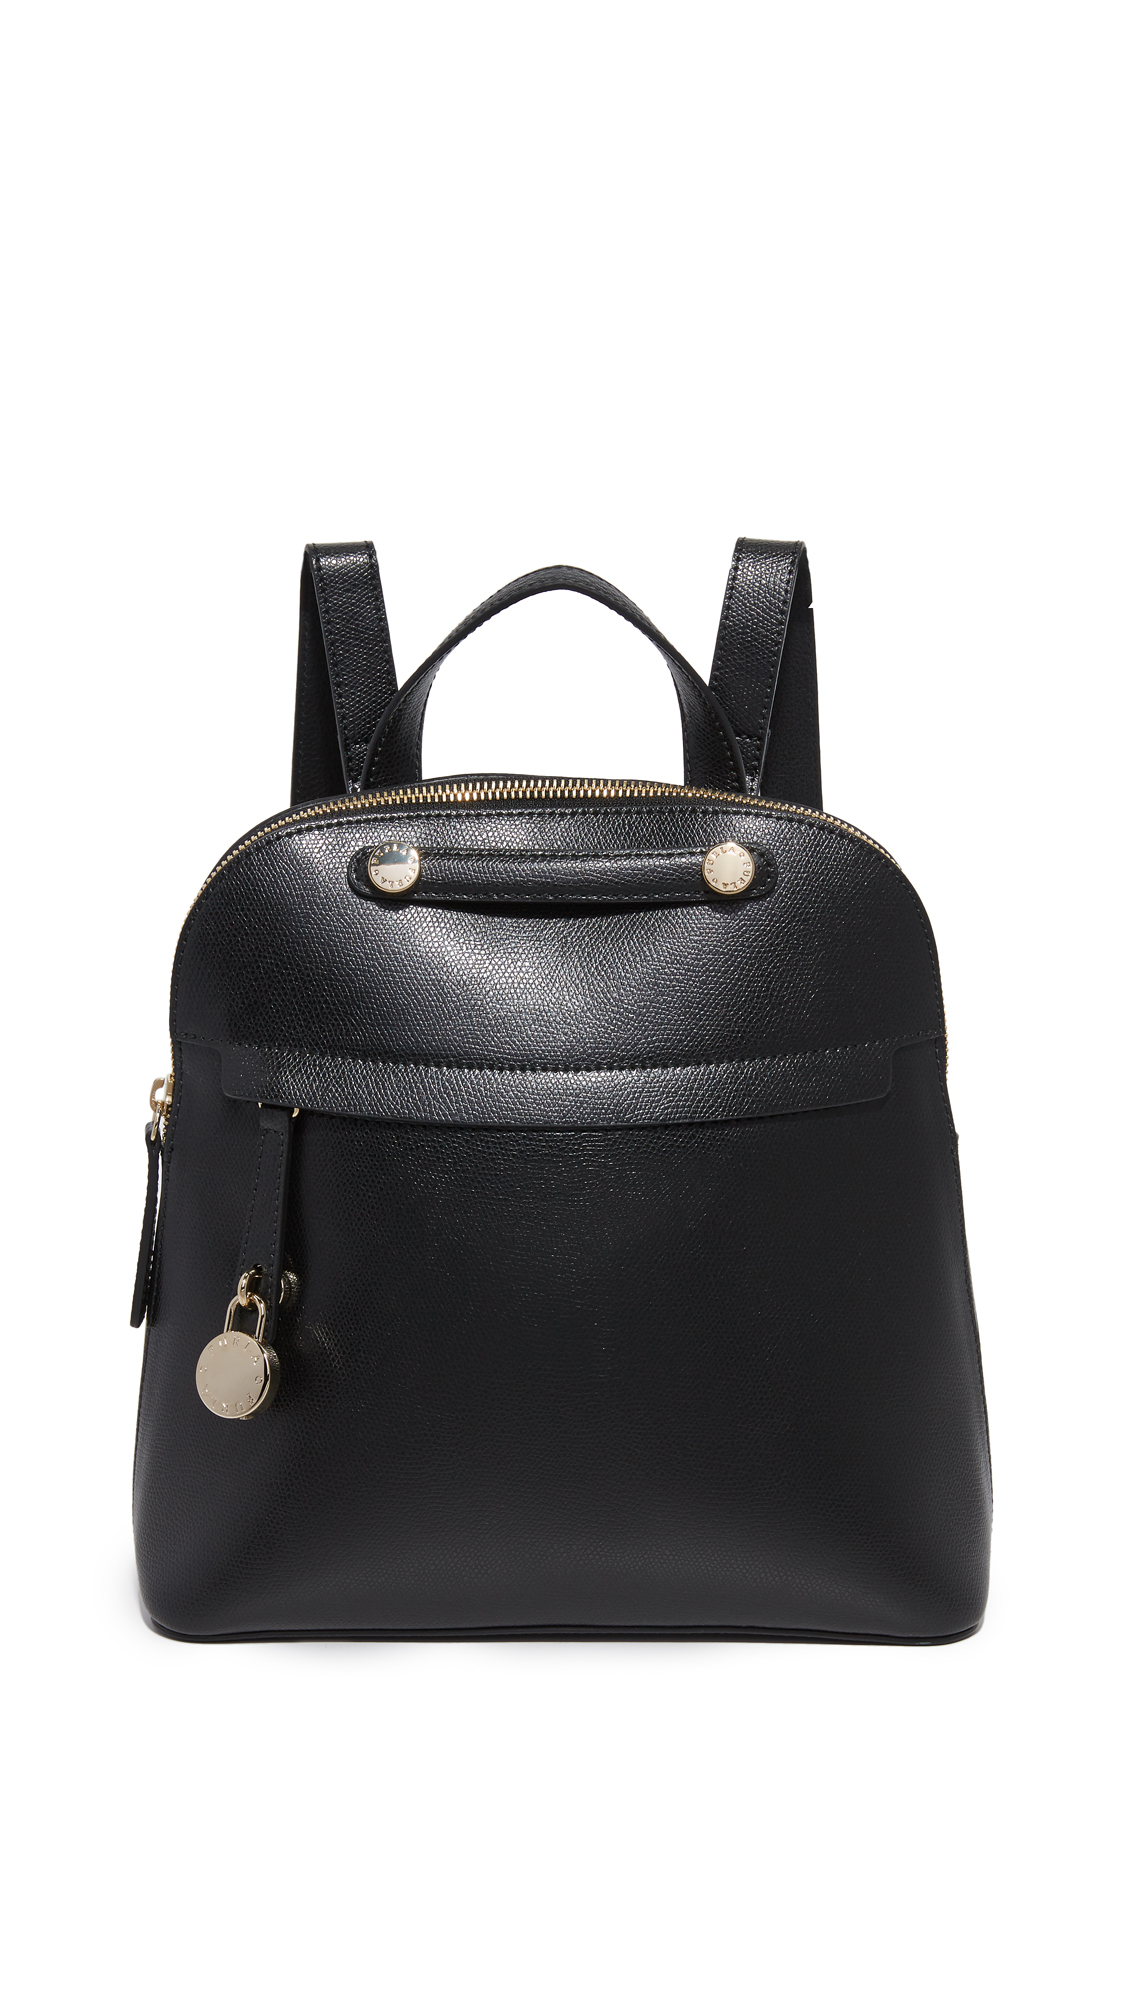 A petite Furla backpack in pebbled leather. Zip front pocket with a polished logo lock. The top zip opens to a lined, 2 pocket interior. Locker loop and adjustable shoulder straps. Dust bag included. Leather: Cowhide. Weight: 28